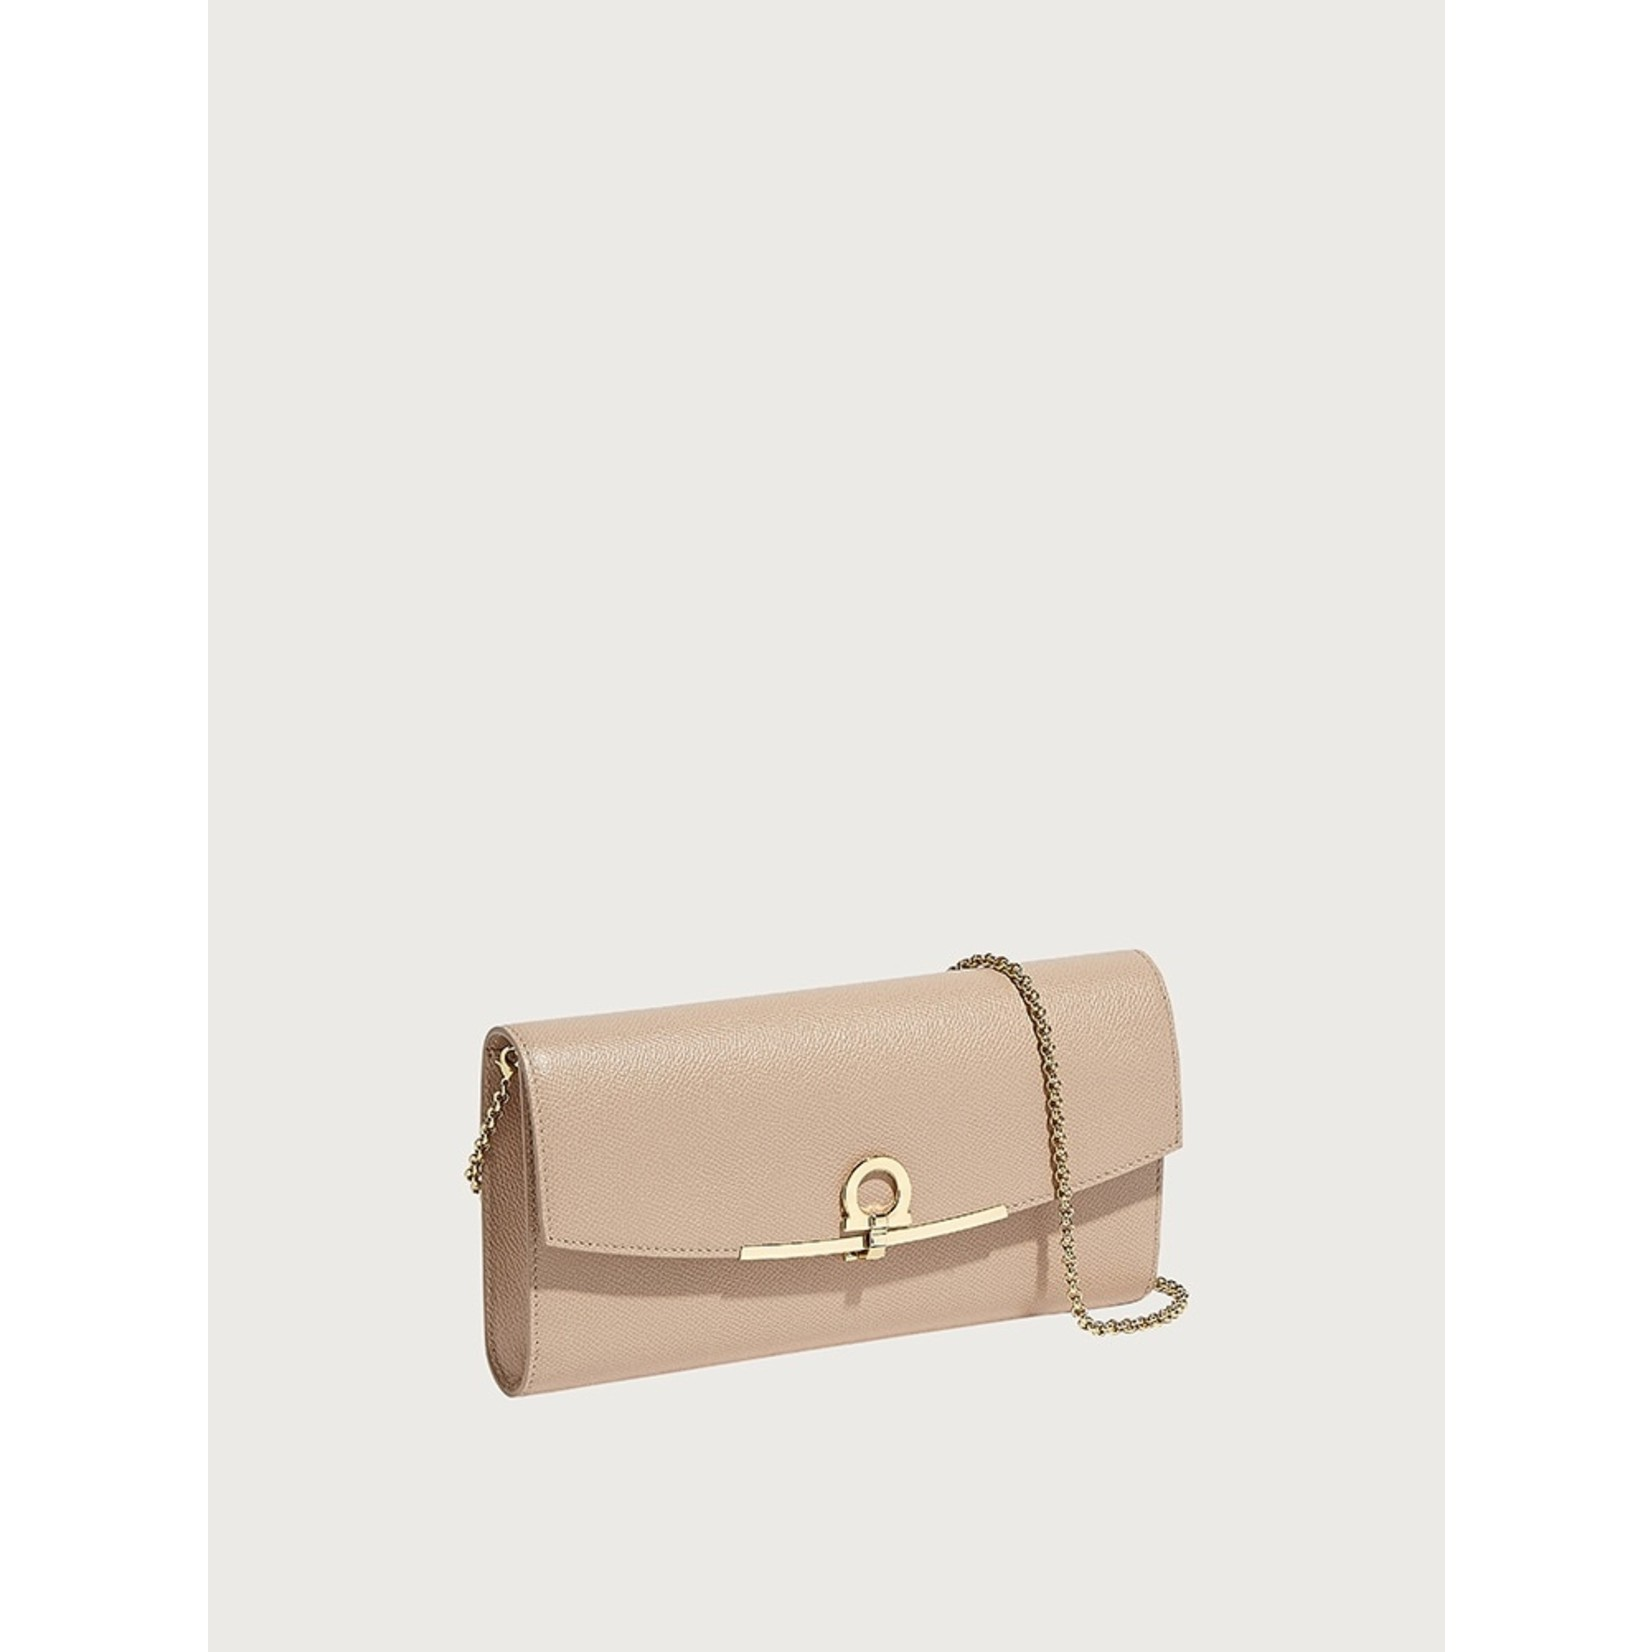 SALVATORE FERRAGAMO SALVATORE FERRAGAMO - MINI HANDBAG - 22C941